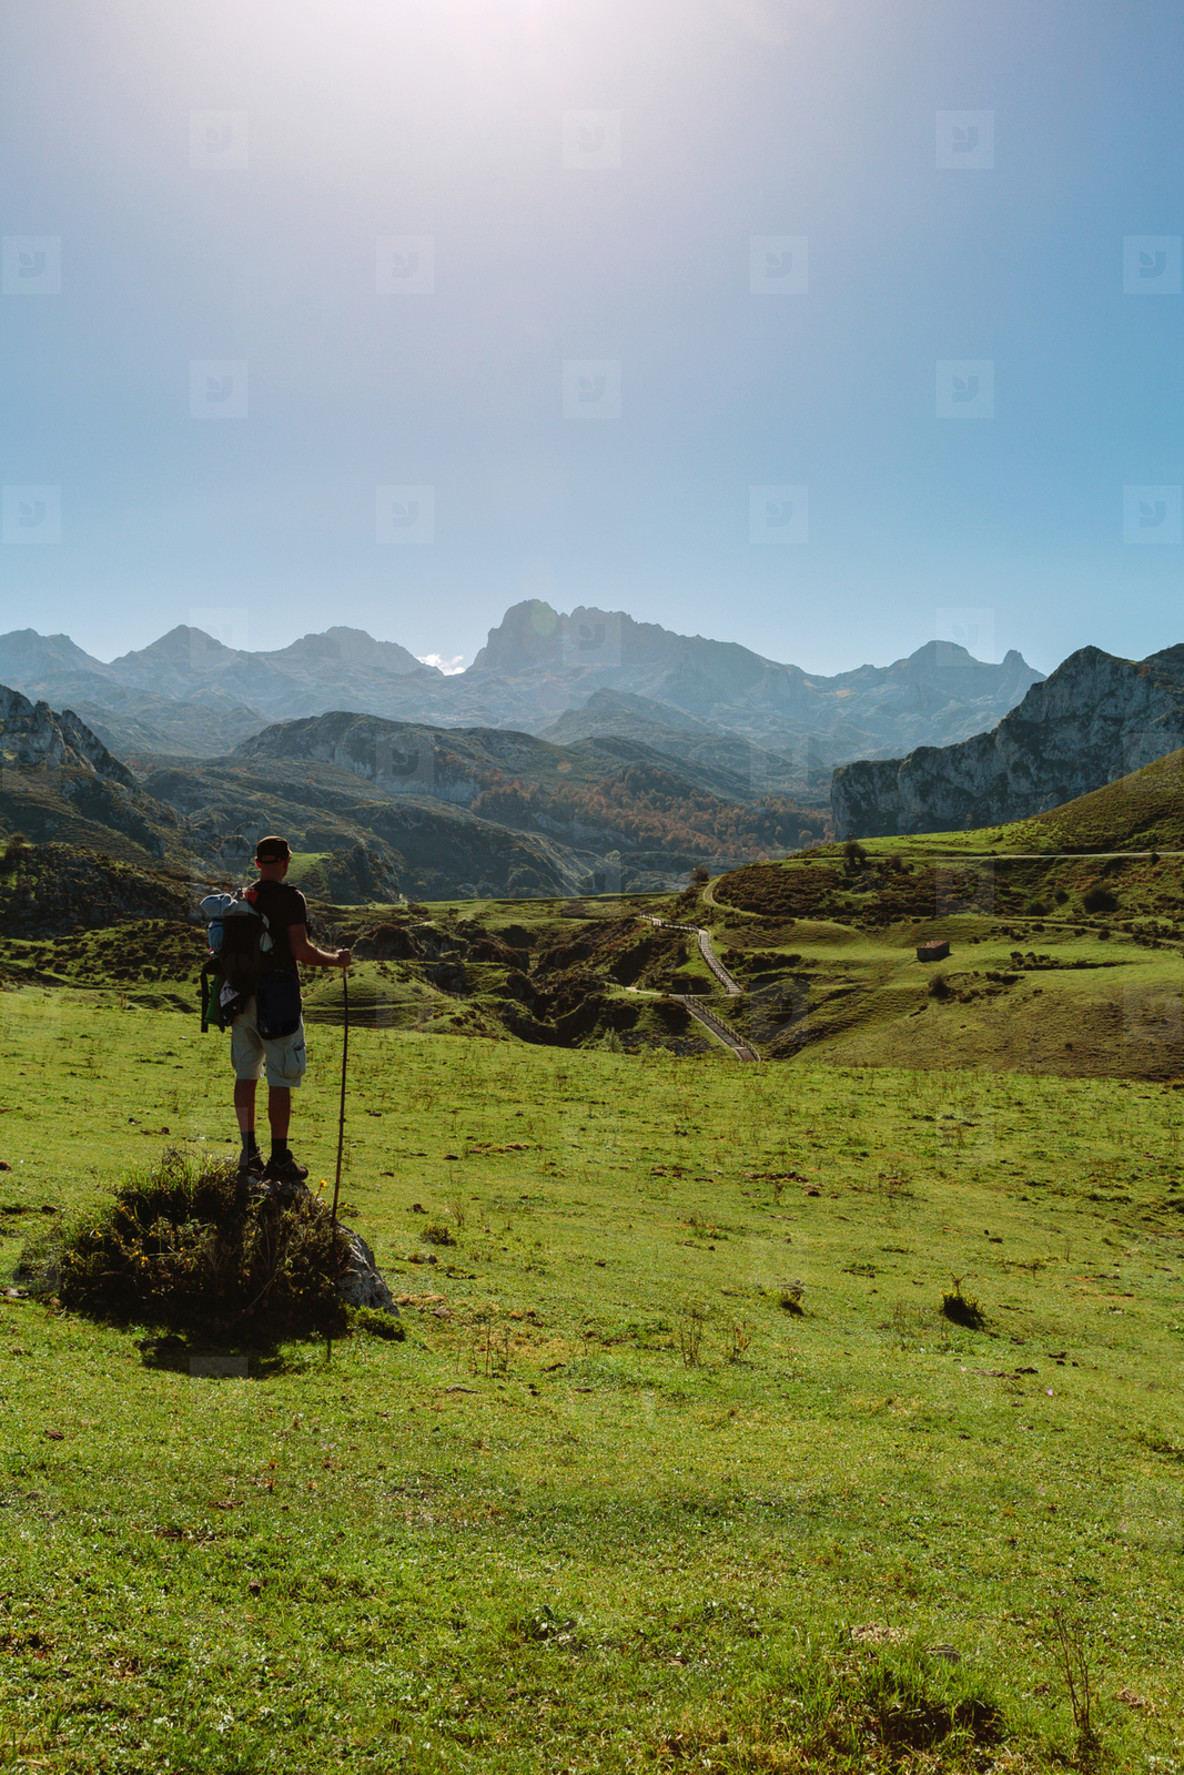 Mountaineer looking landscape with path between mountains